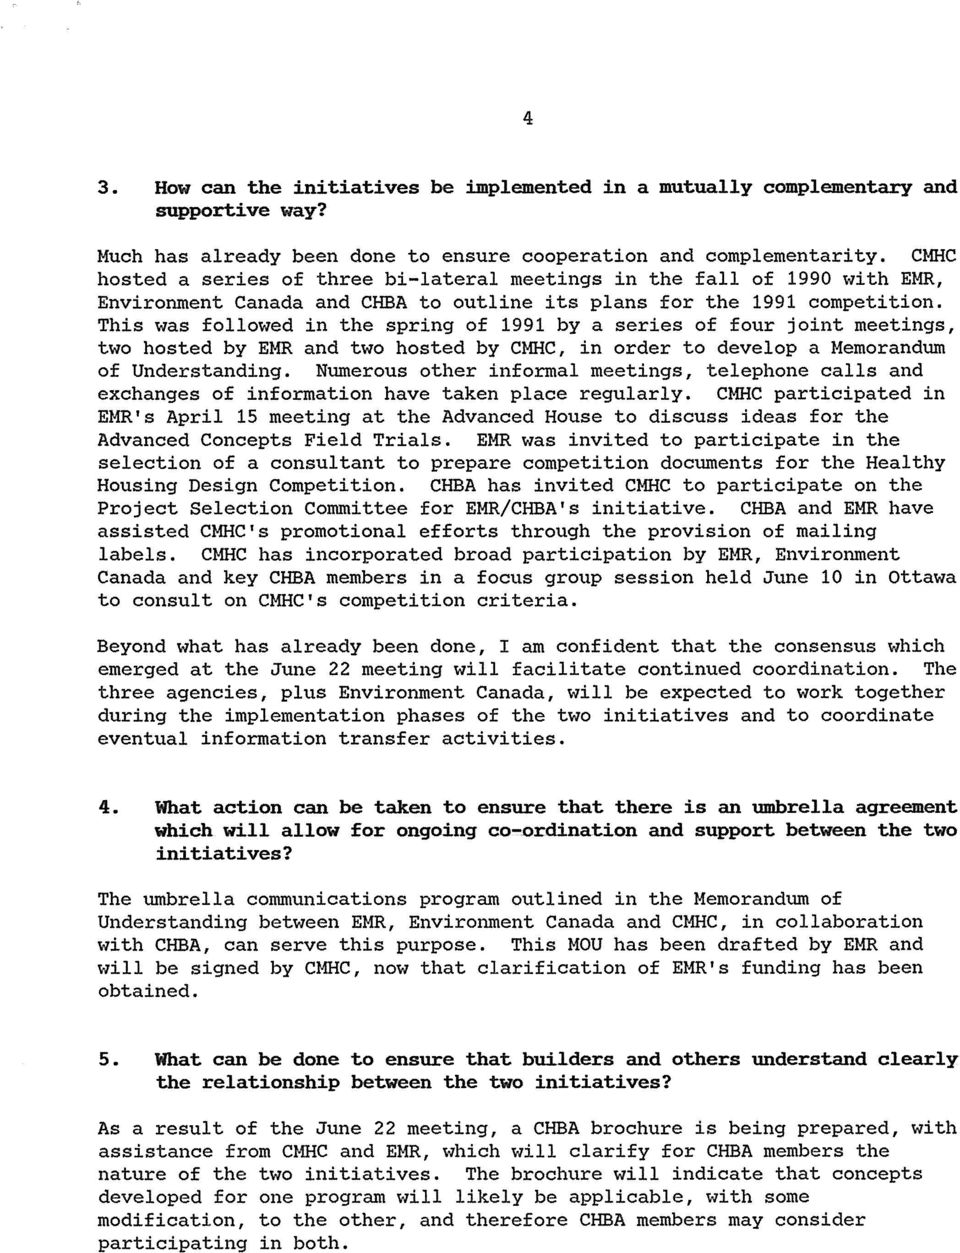 This was followed in the spring of 1991 by a series of four joint meetings, two hosted by EMR and two hosted by CMHC, in order to develop a Memorandum of Understanding.